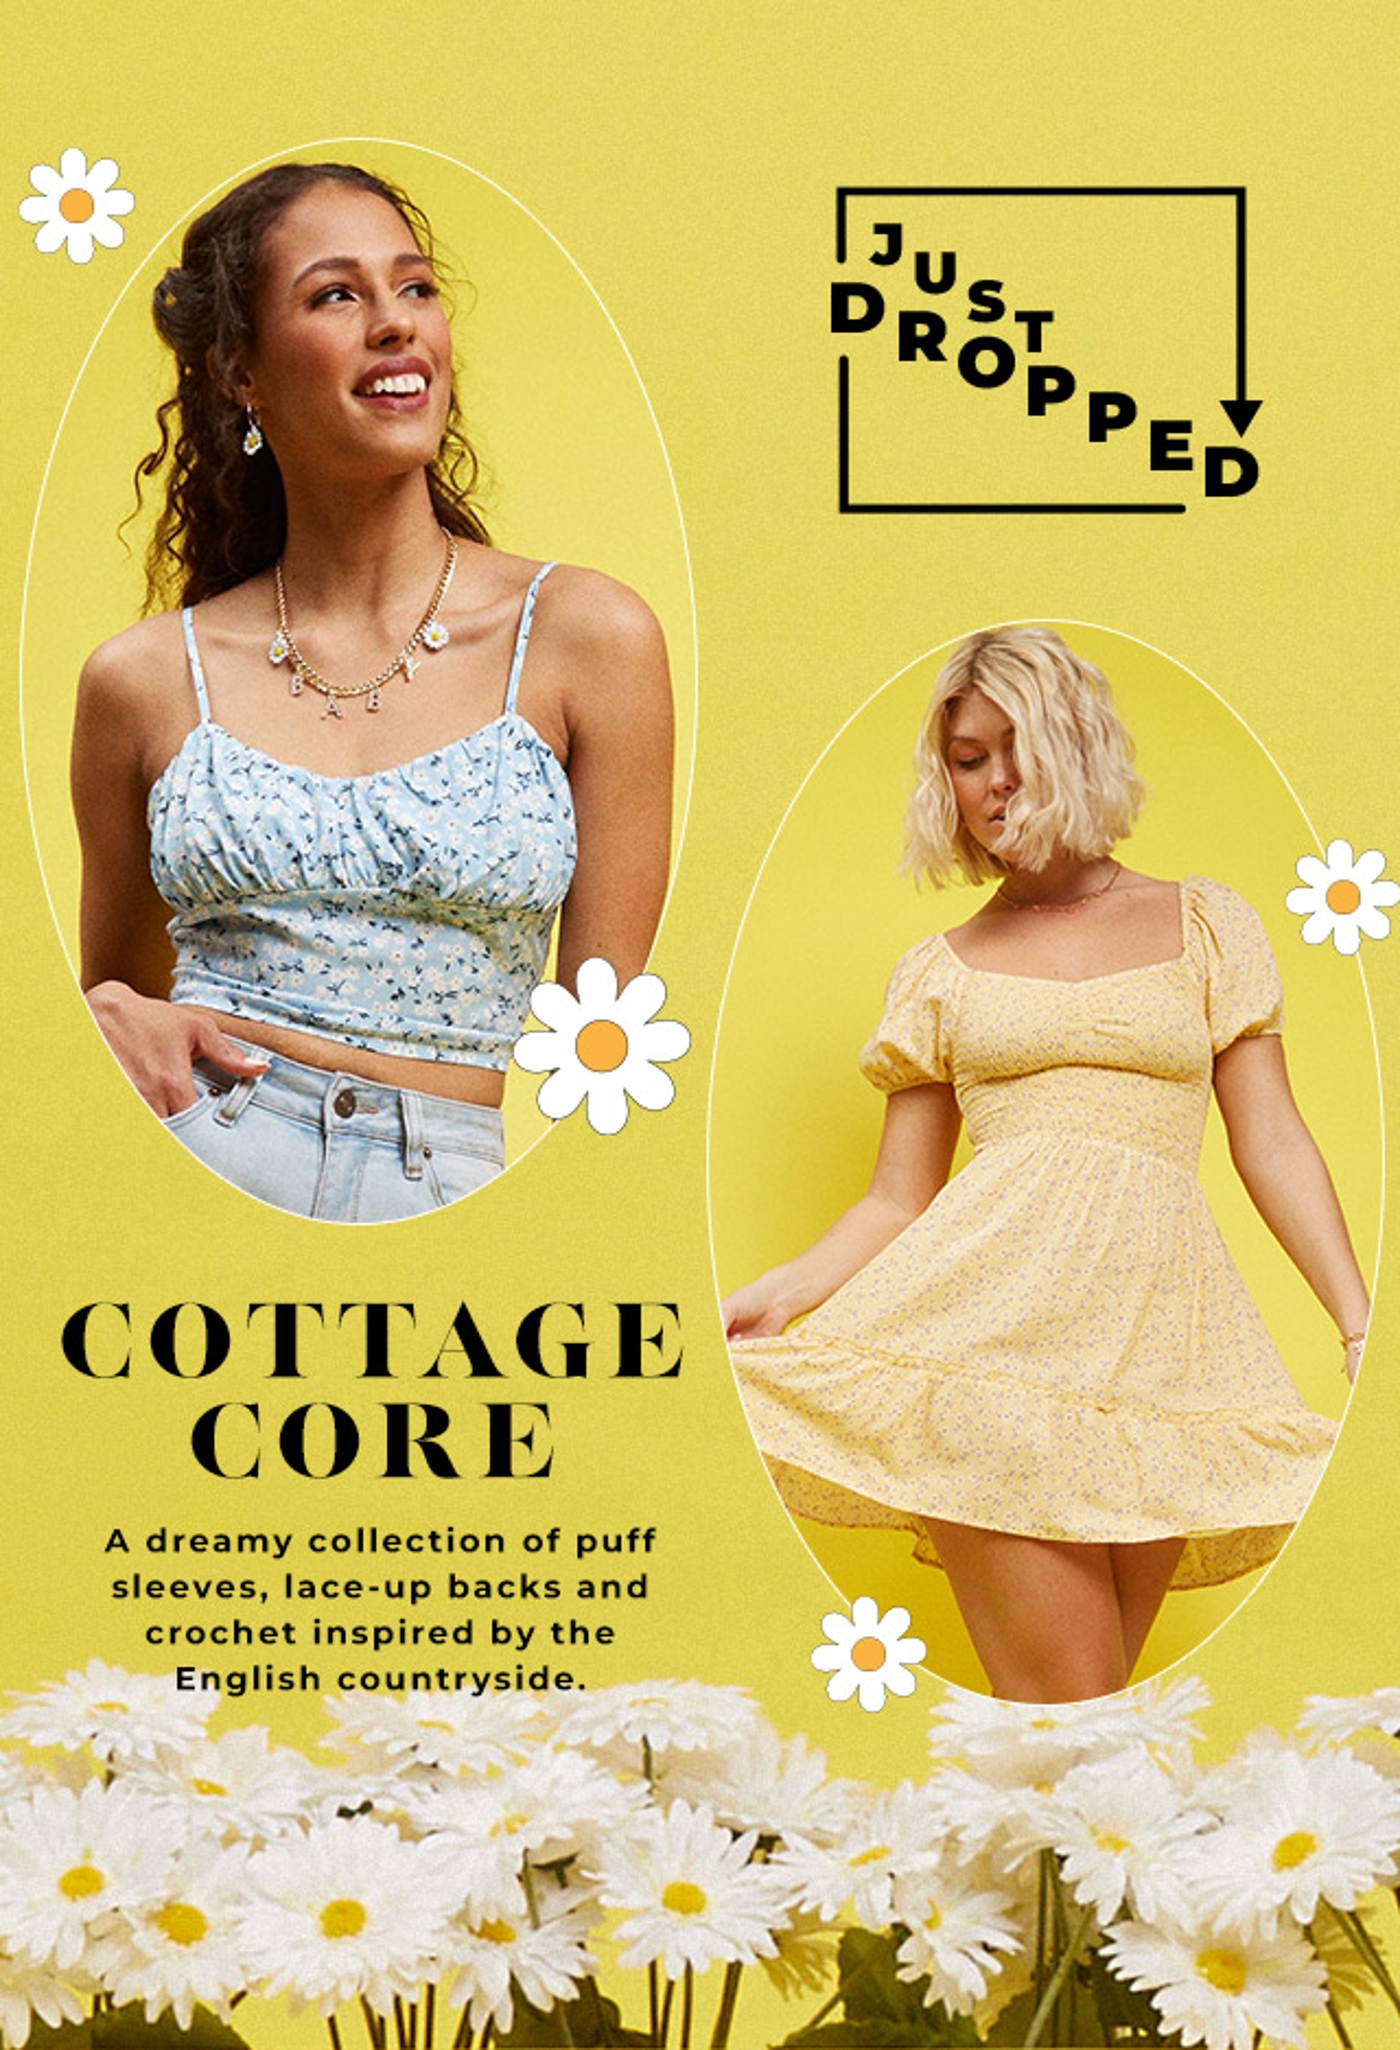 COTTAGE CORE COLLECTION